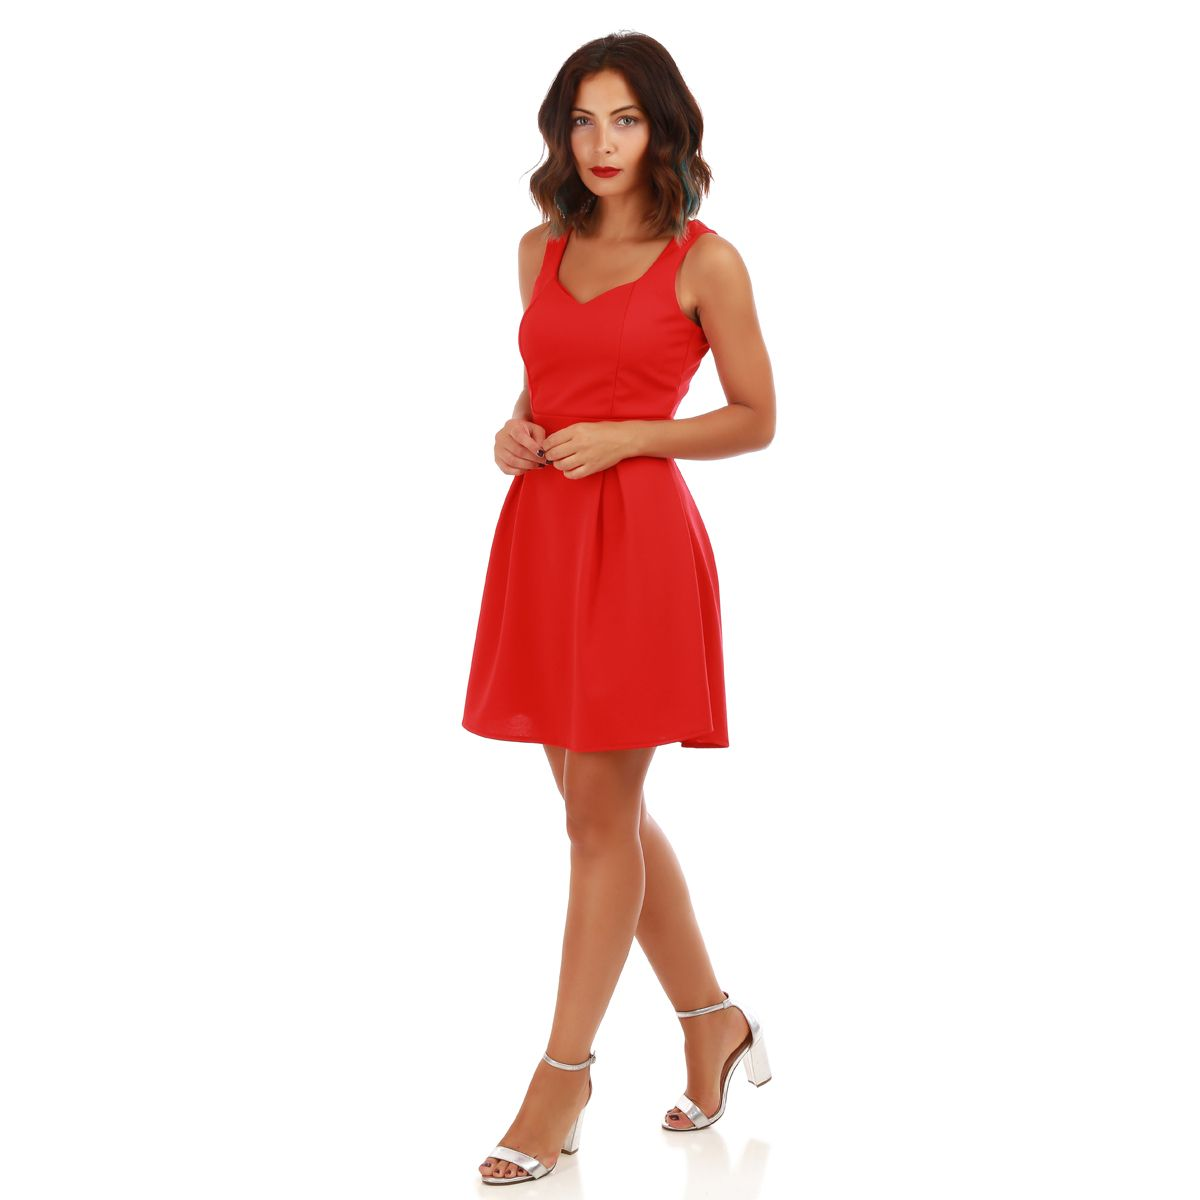 Robe coeur patineuse rouge